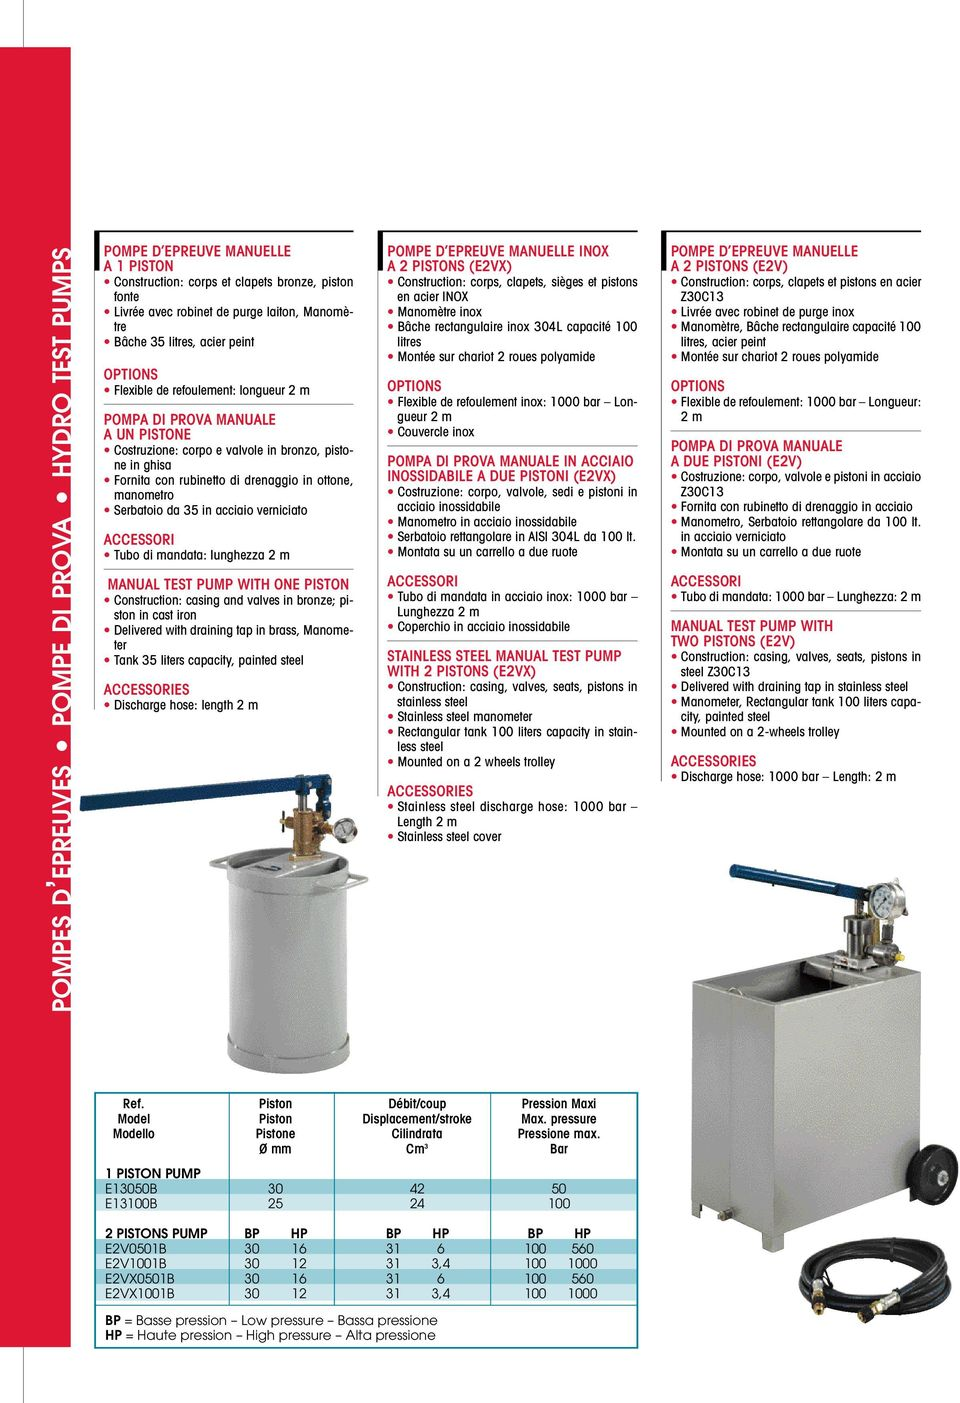 manometro Serbatoio da 35 in acciaio verniciato Tubo di mandata: lunghezza 2 m MANUAL TEST PUMP WITH ONE PISTON Construction: casing and valves in bronze; piston in cast iron Delivered with draining